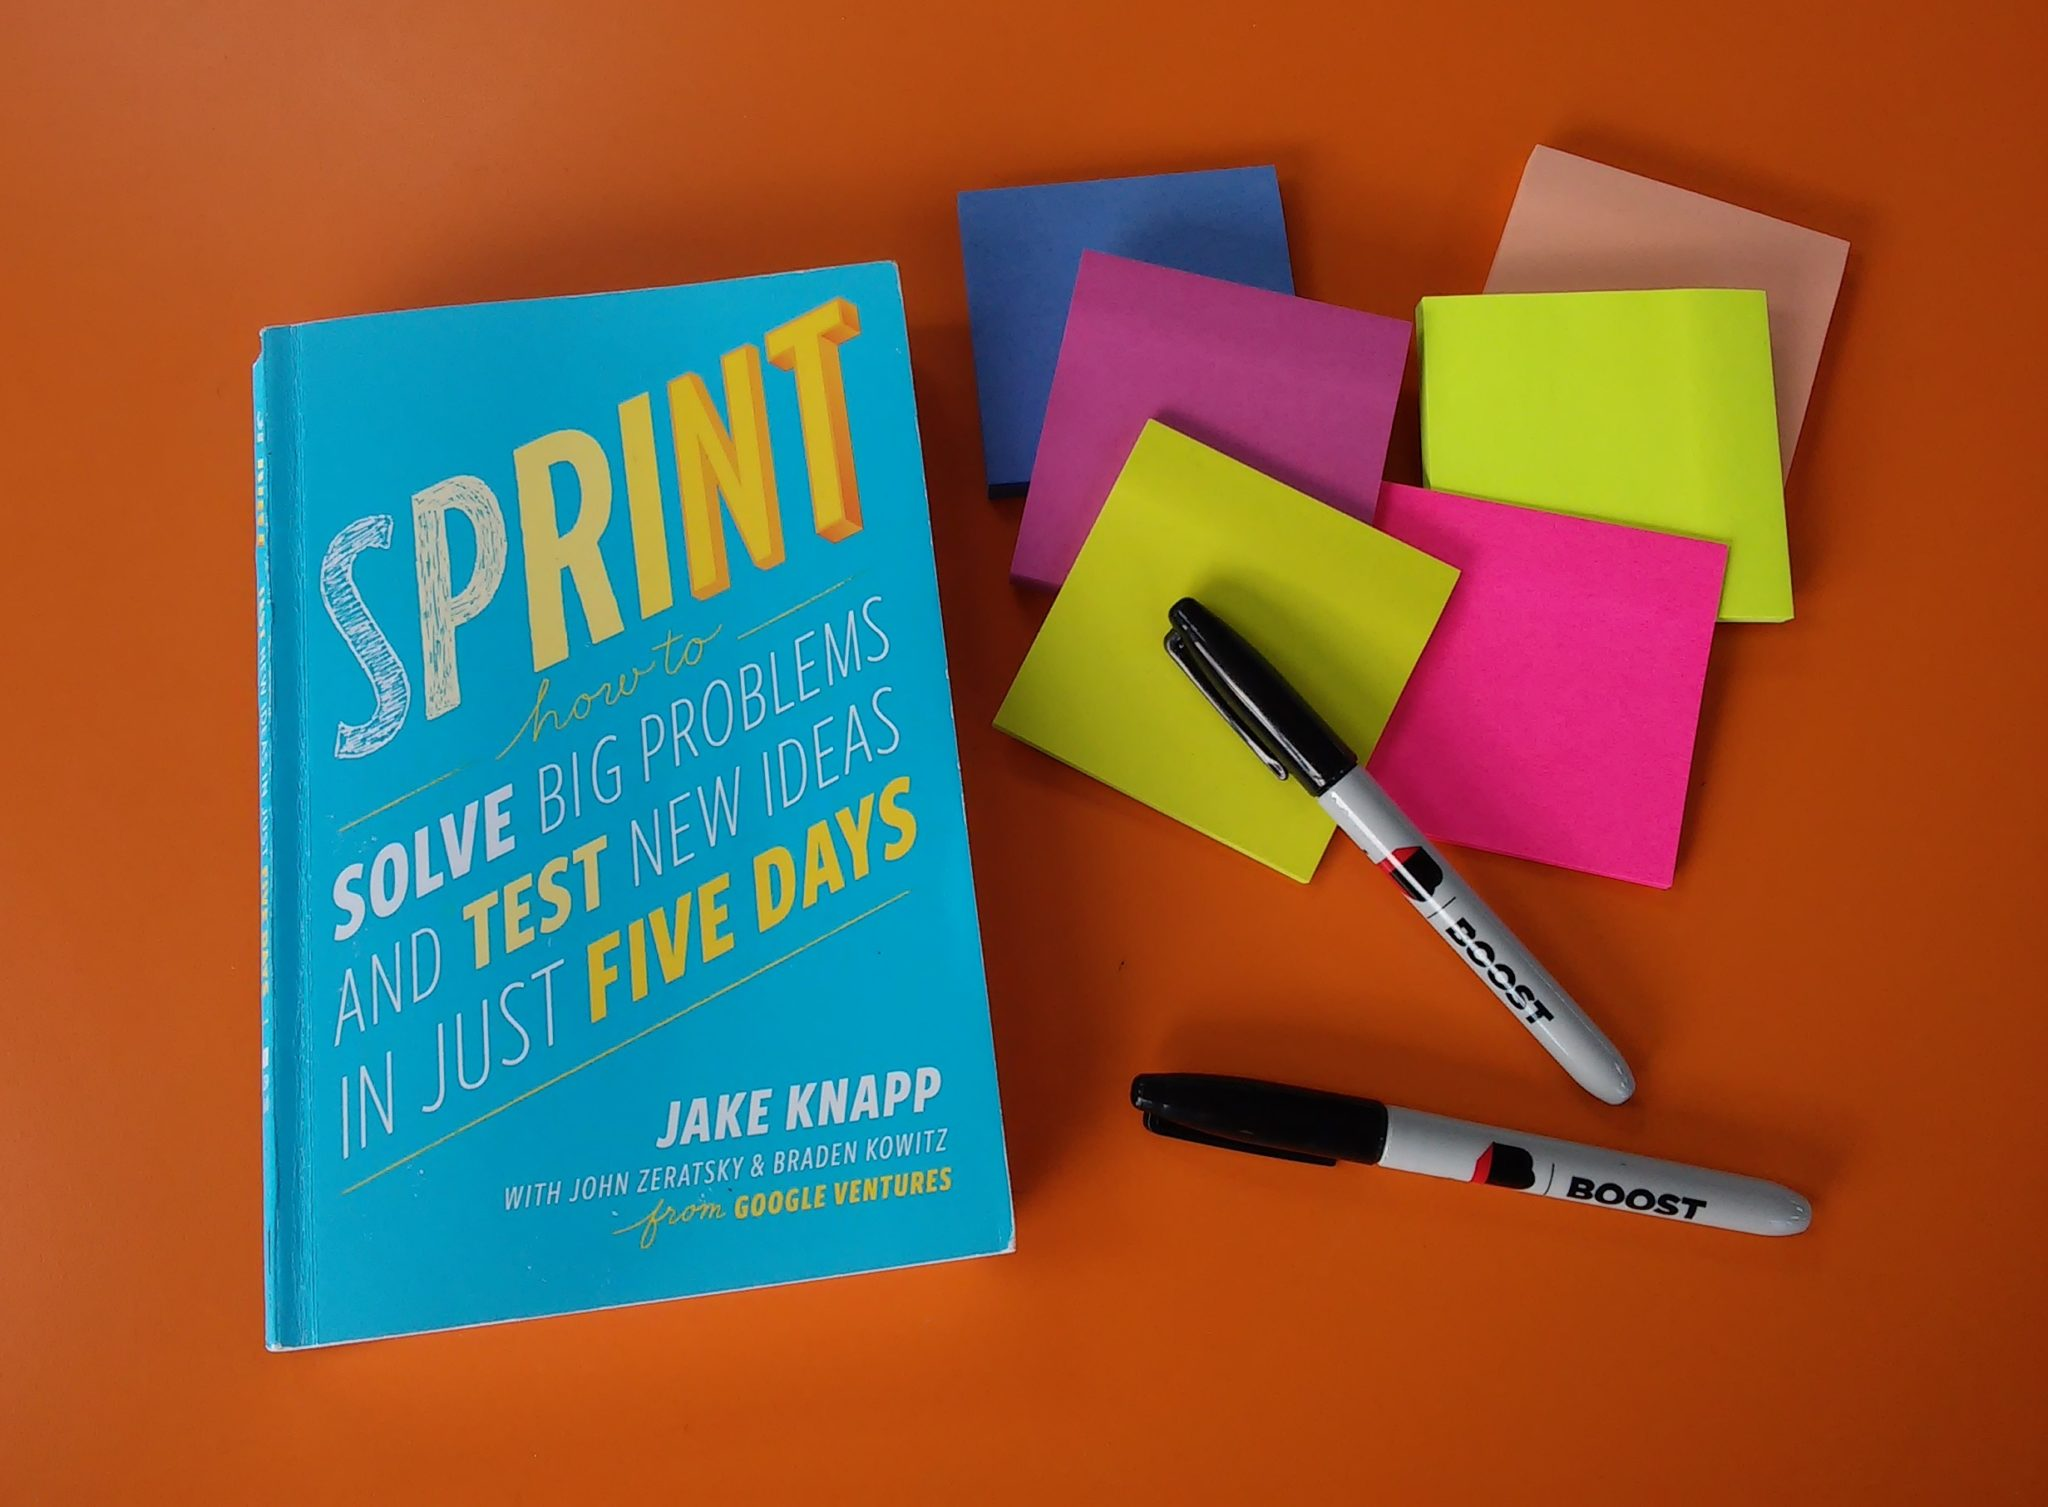 Sprint book post its pens